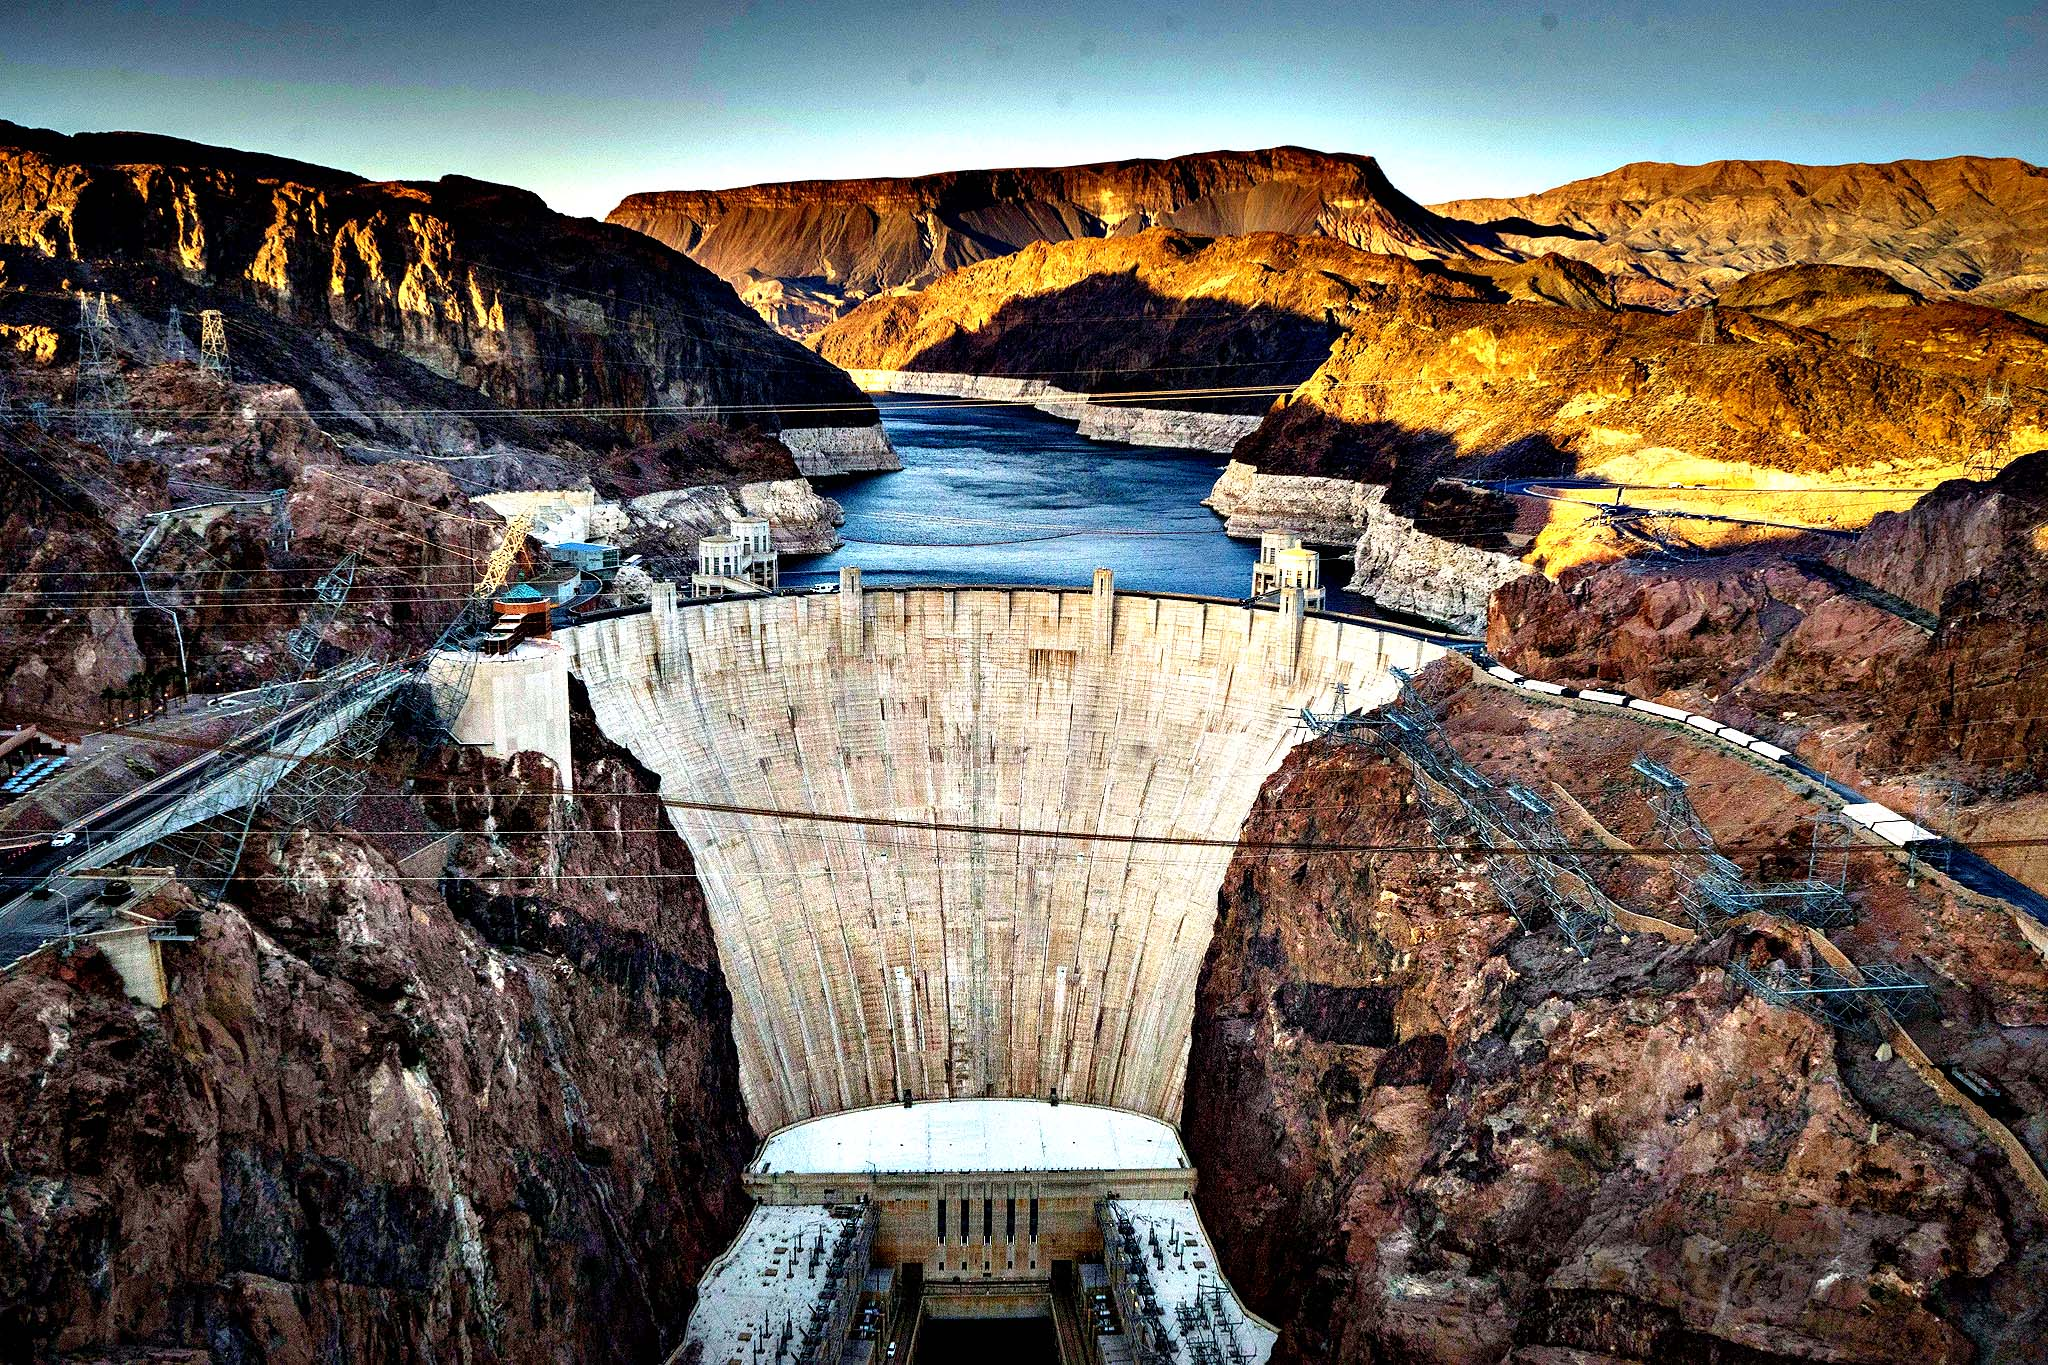 Hoover Dam, a concrete arch-gravity dam in the Black Canyon of the Colorado River on the border between the US states of Arizona and Nevada. Hoover Dam ,finished in 1936, impounds Lake Mead, the largest reservoir in the United States by volume. The dam's generators provide power for public and private utilities in Nevada, Arizona, and California. Hoover Dam is a major tourist attraction; nearly a million people tour the dam each year.